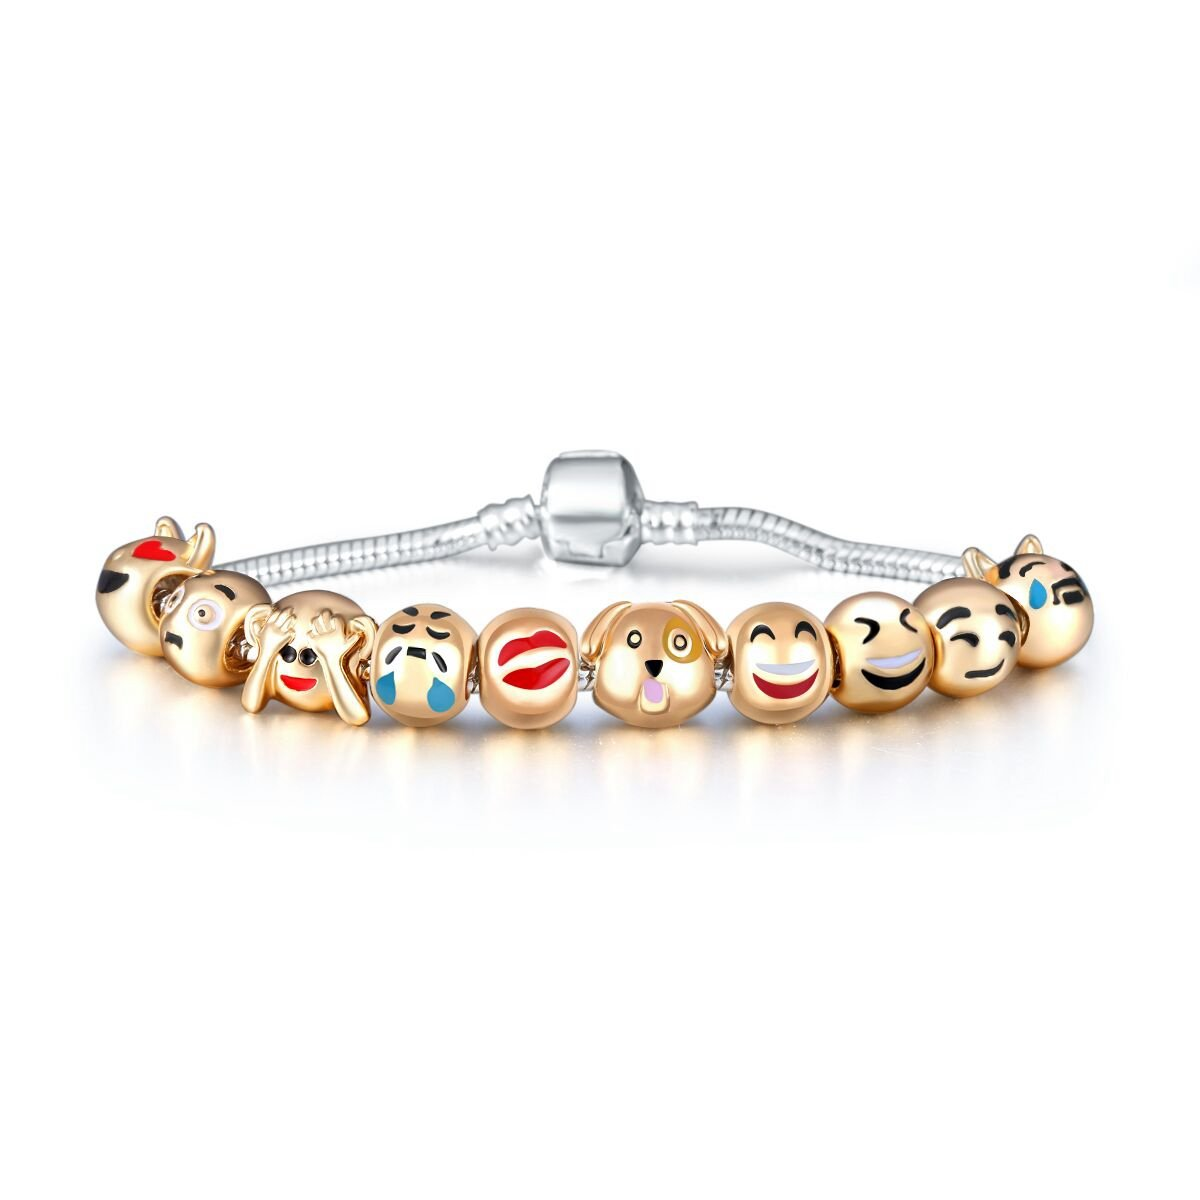 Eccosa Cute Animals Faces Charms Bracelet for Girls 18K Gold Plated Emoji Faces Beads bracelets PB347-19c